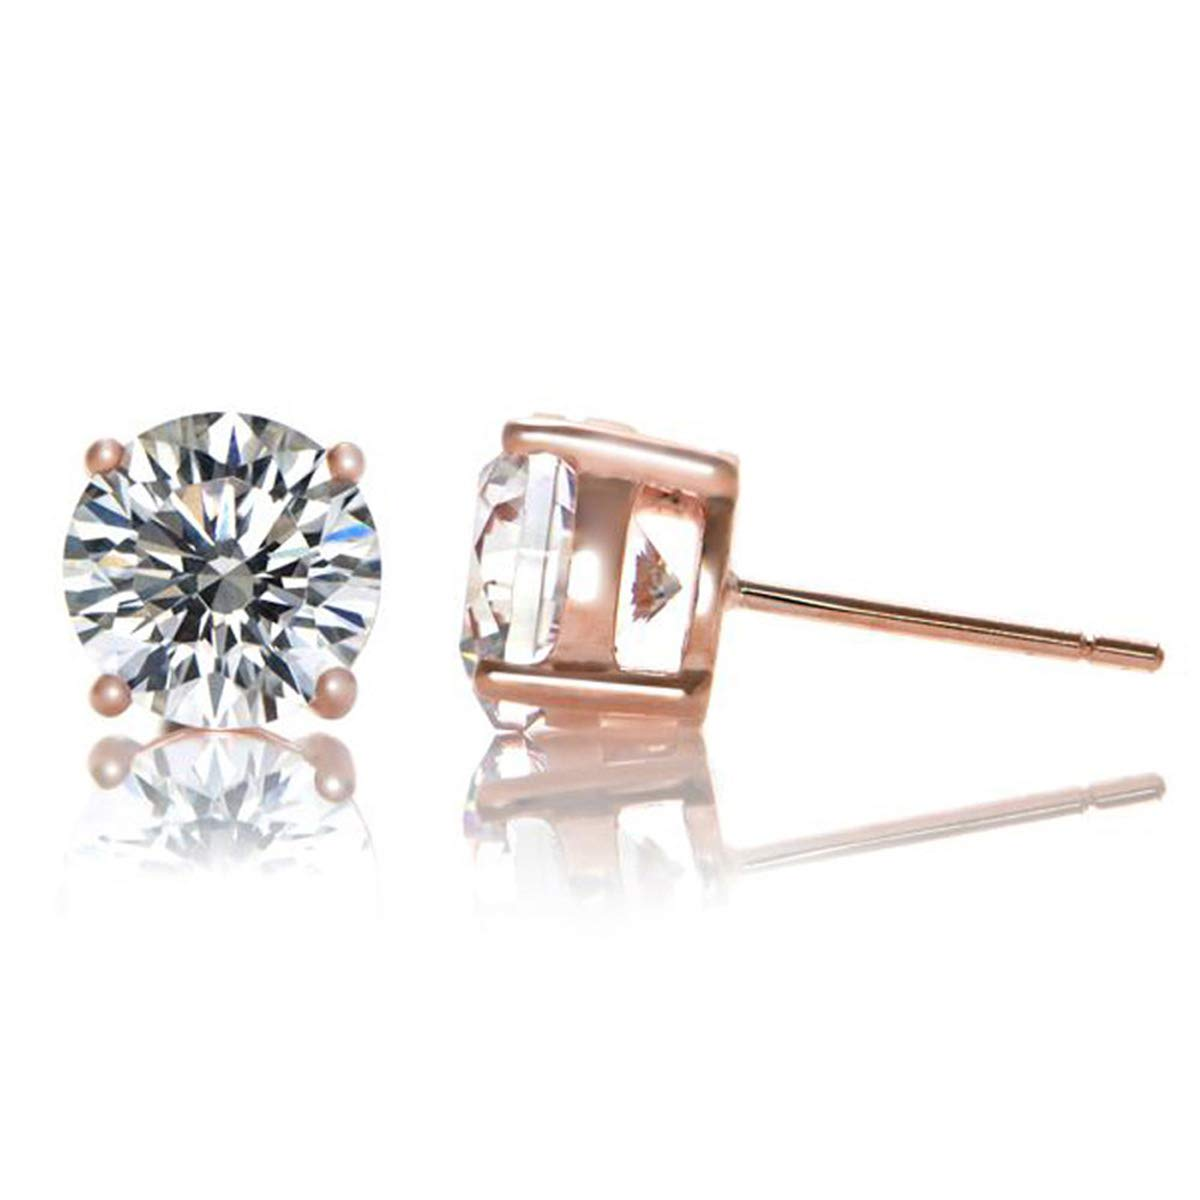 .925 Sterling Silver April Birthstone Cubic Zirconia Solitaire Stud Earrings